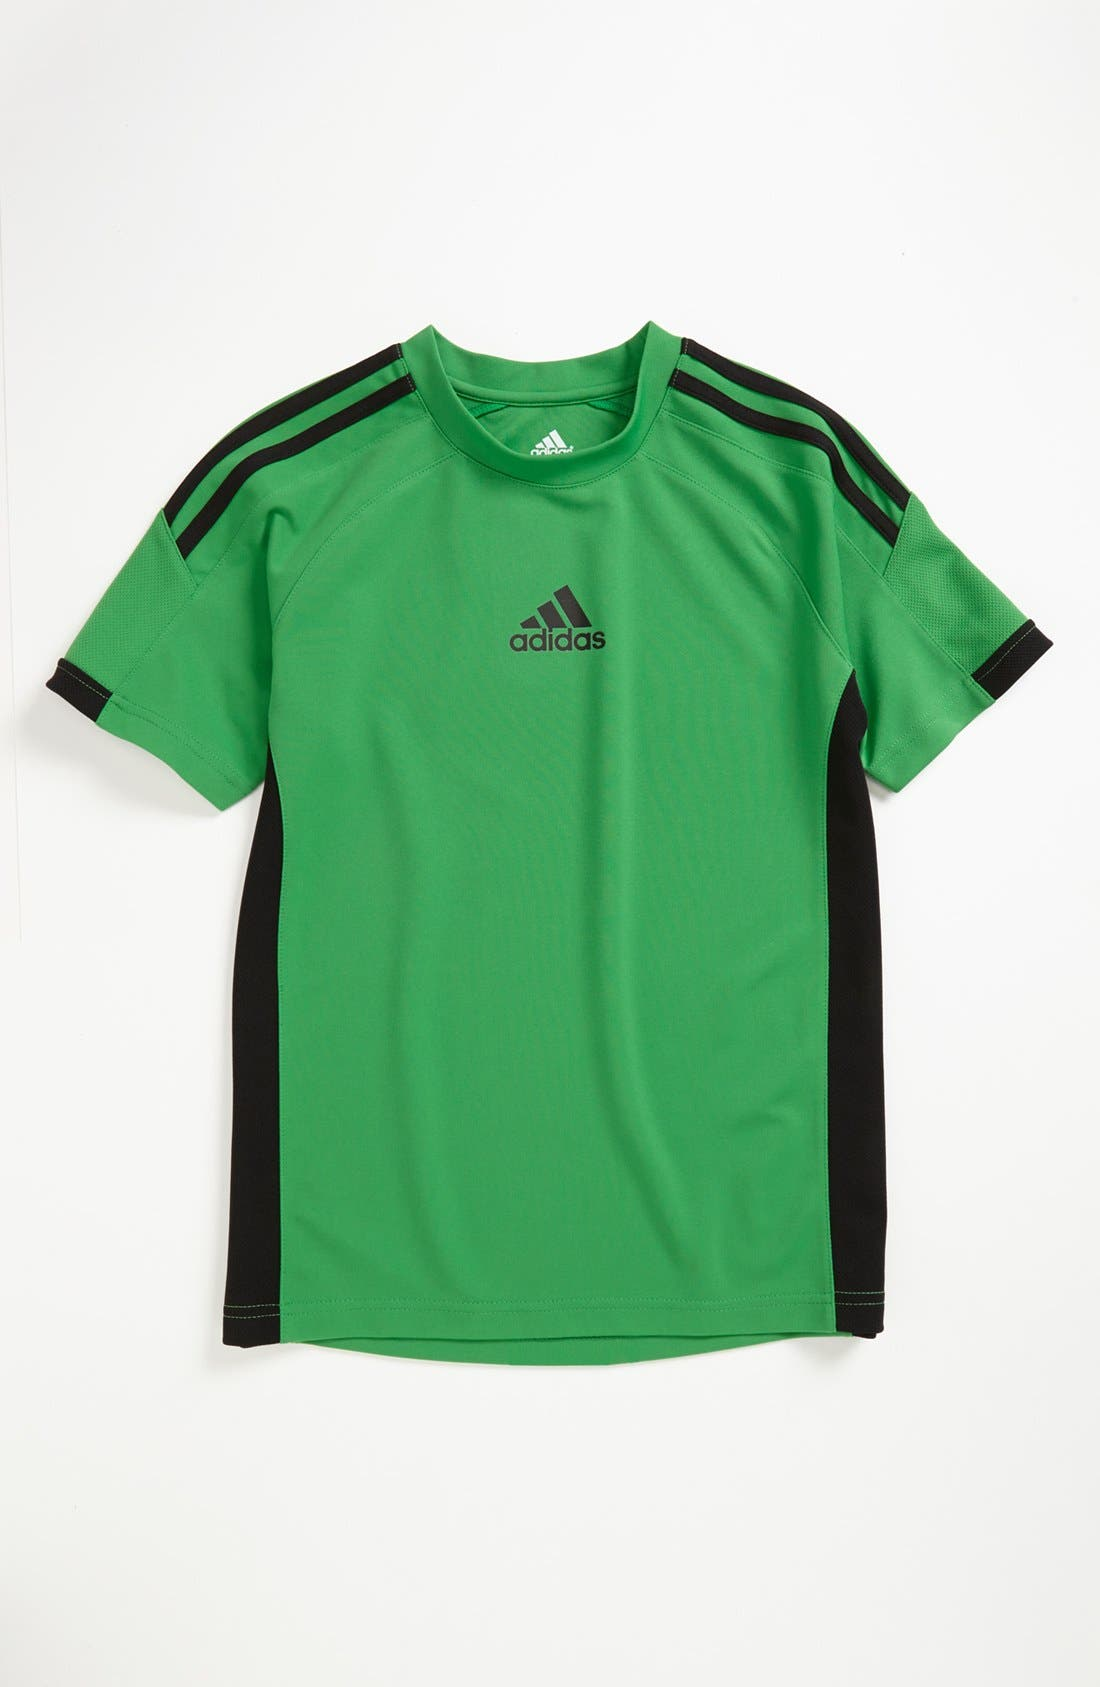 Alternate Image 1 Selected - adidas 'Special Event' T-Shirt (Big Boys)